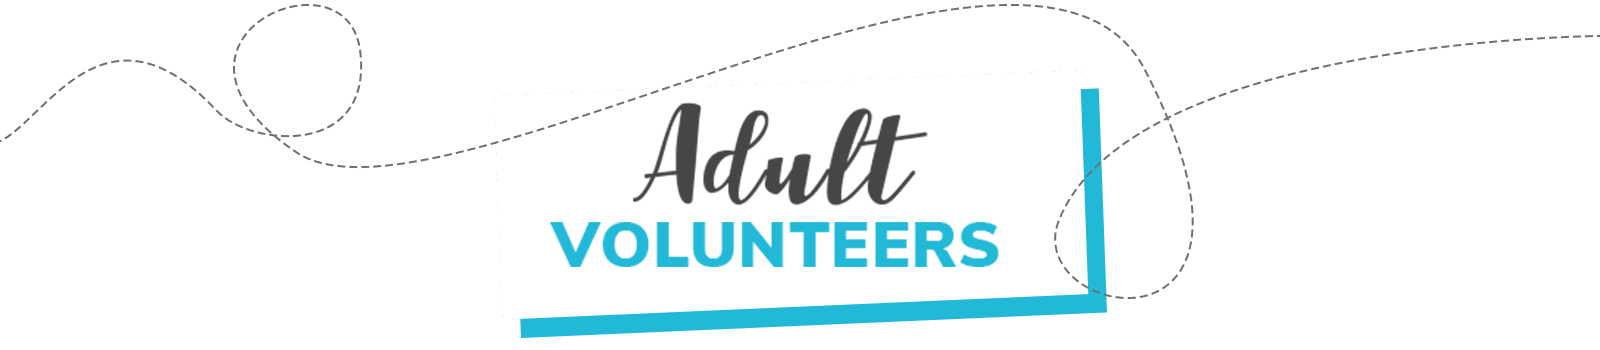 Adult 